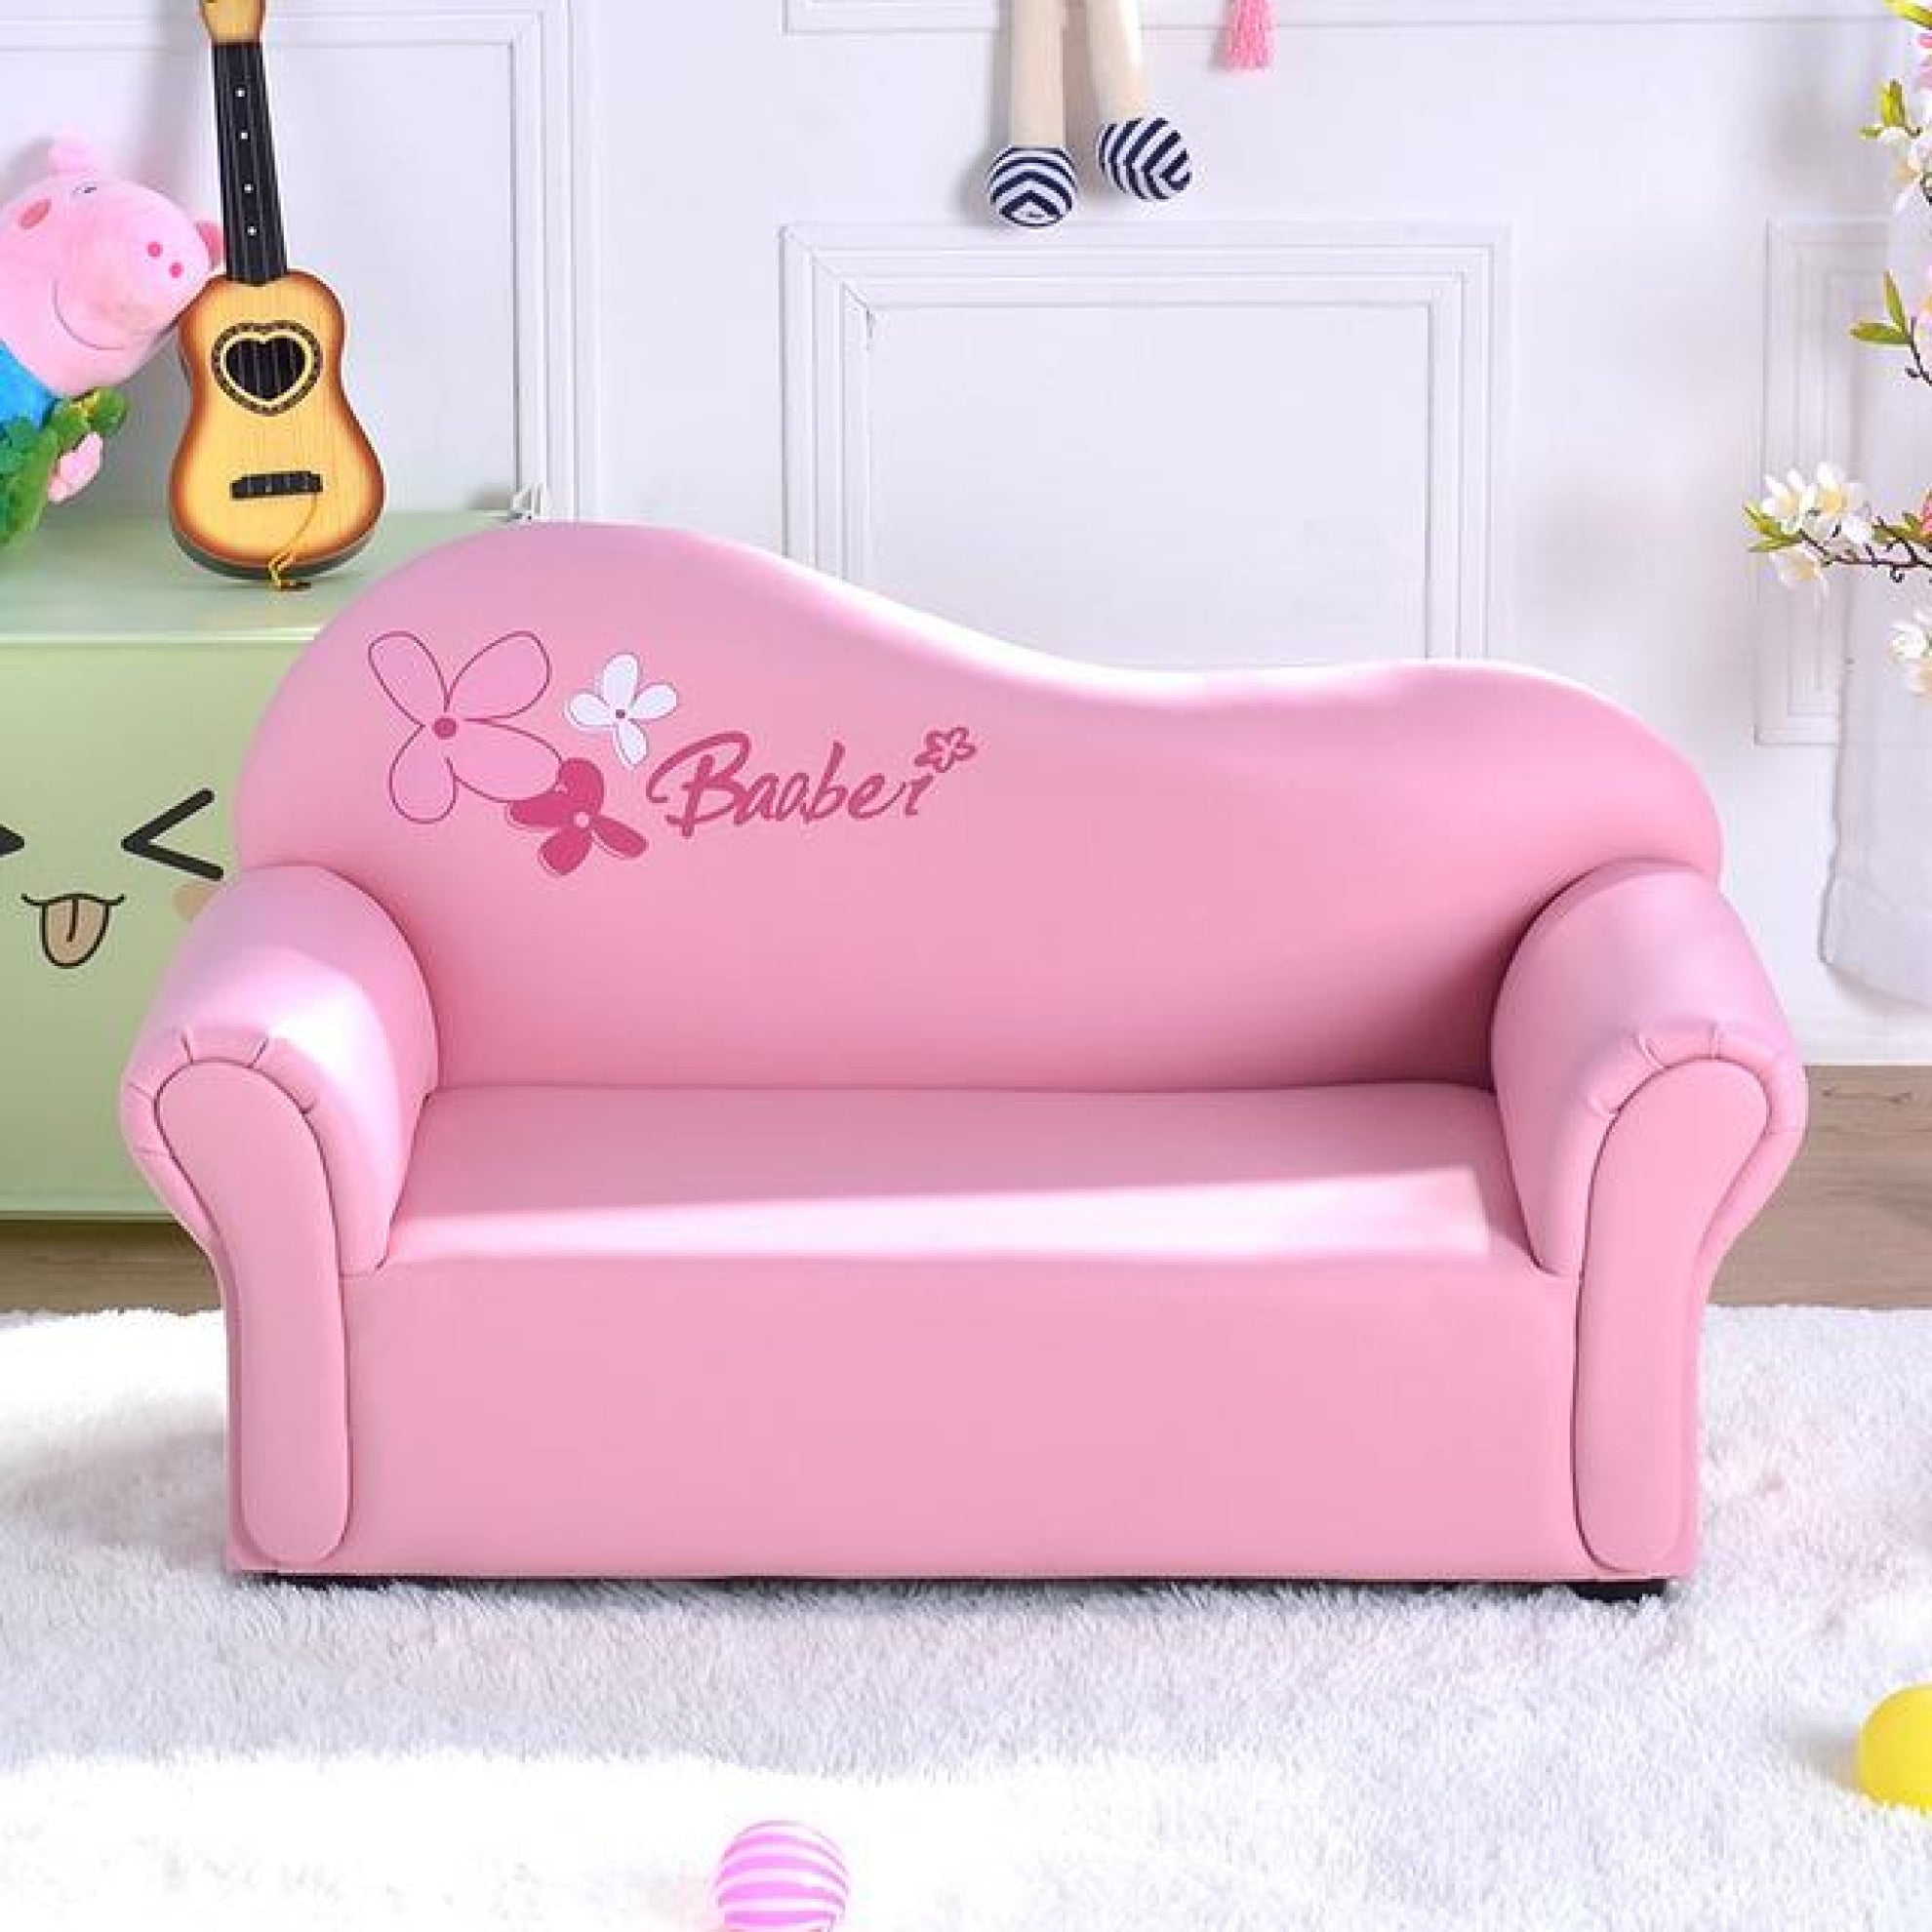 - Kindergarten Baby Chaise Lounge For Kids Furniture My Aashis